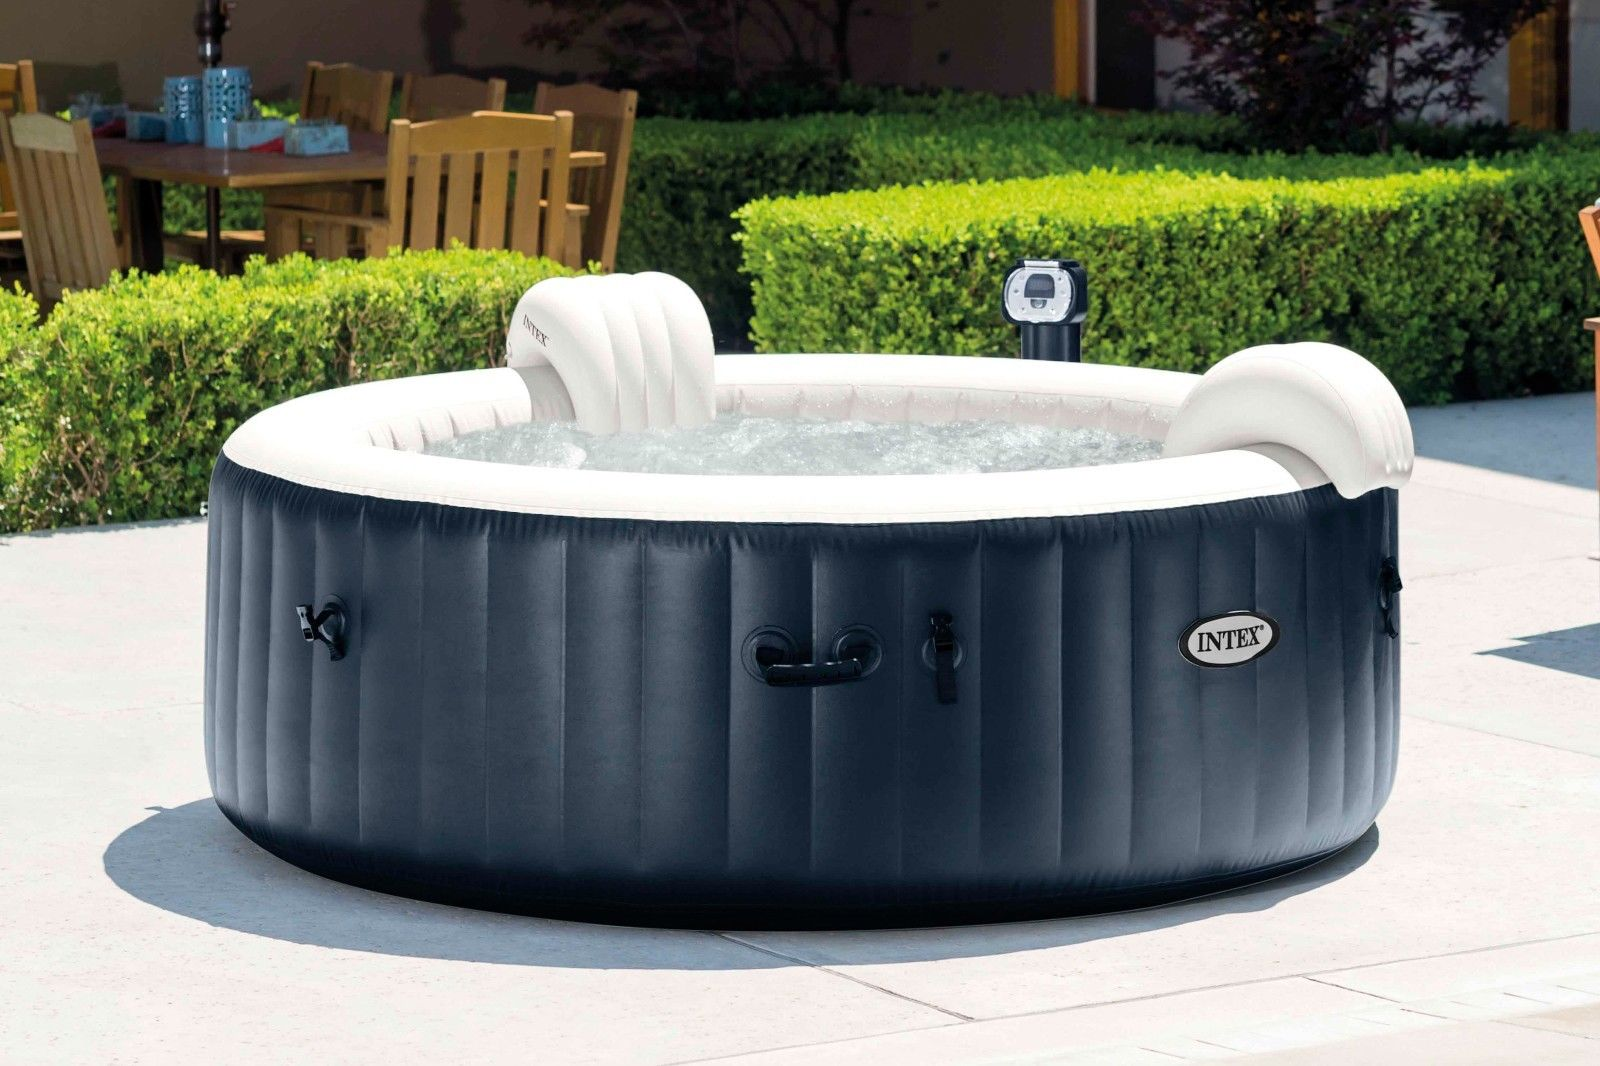 intex pure spa 4 person inflatable portable heated bubble. Black Bedroom Furniture Sets. Home Design Ideas